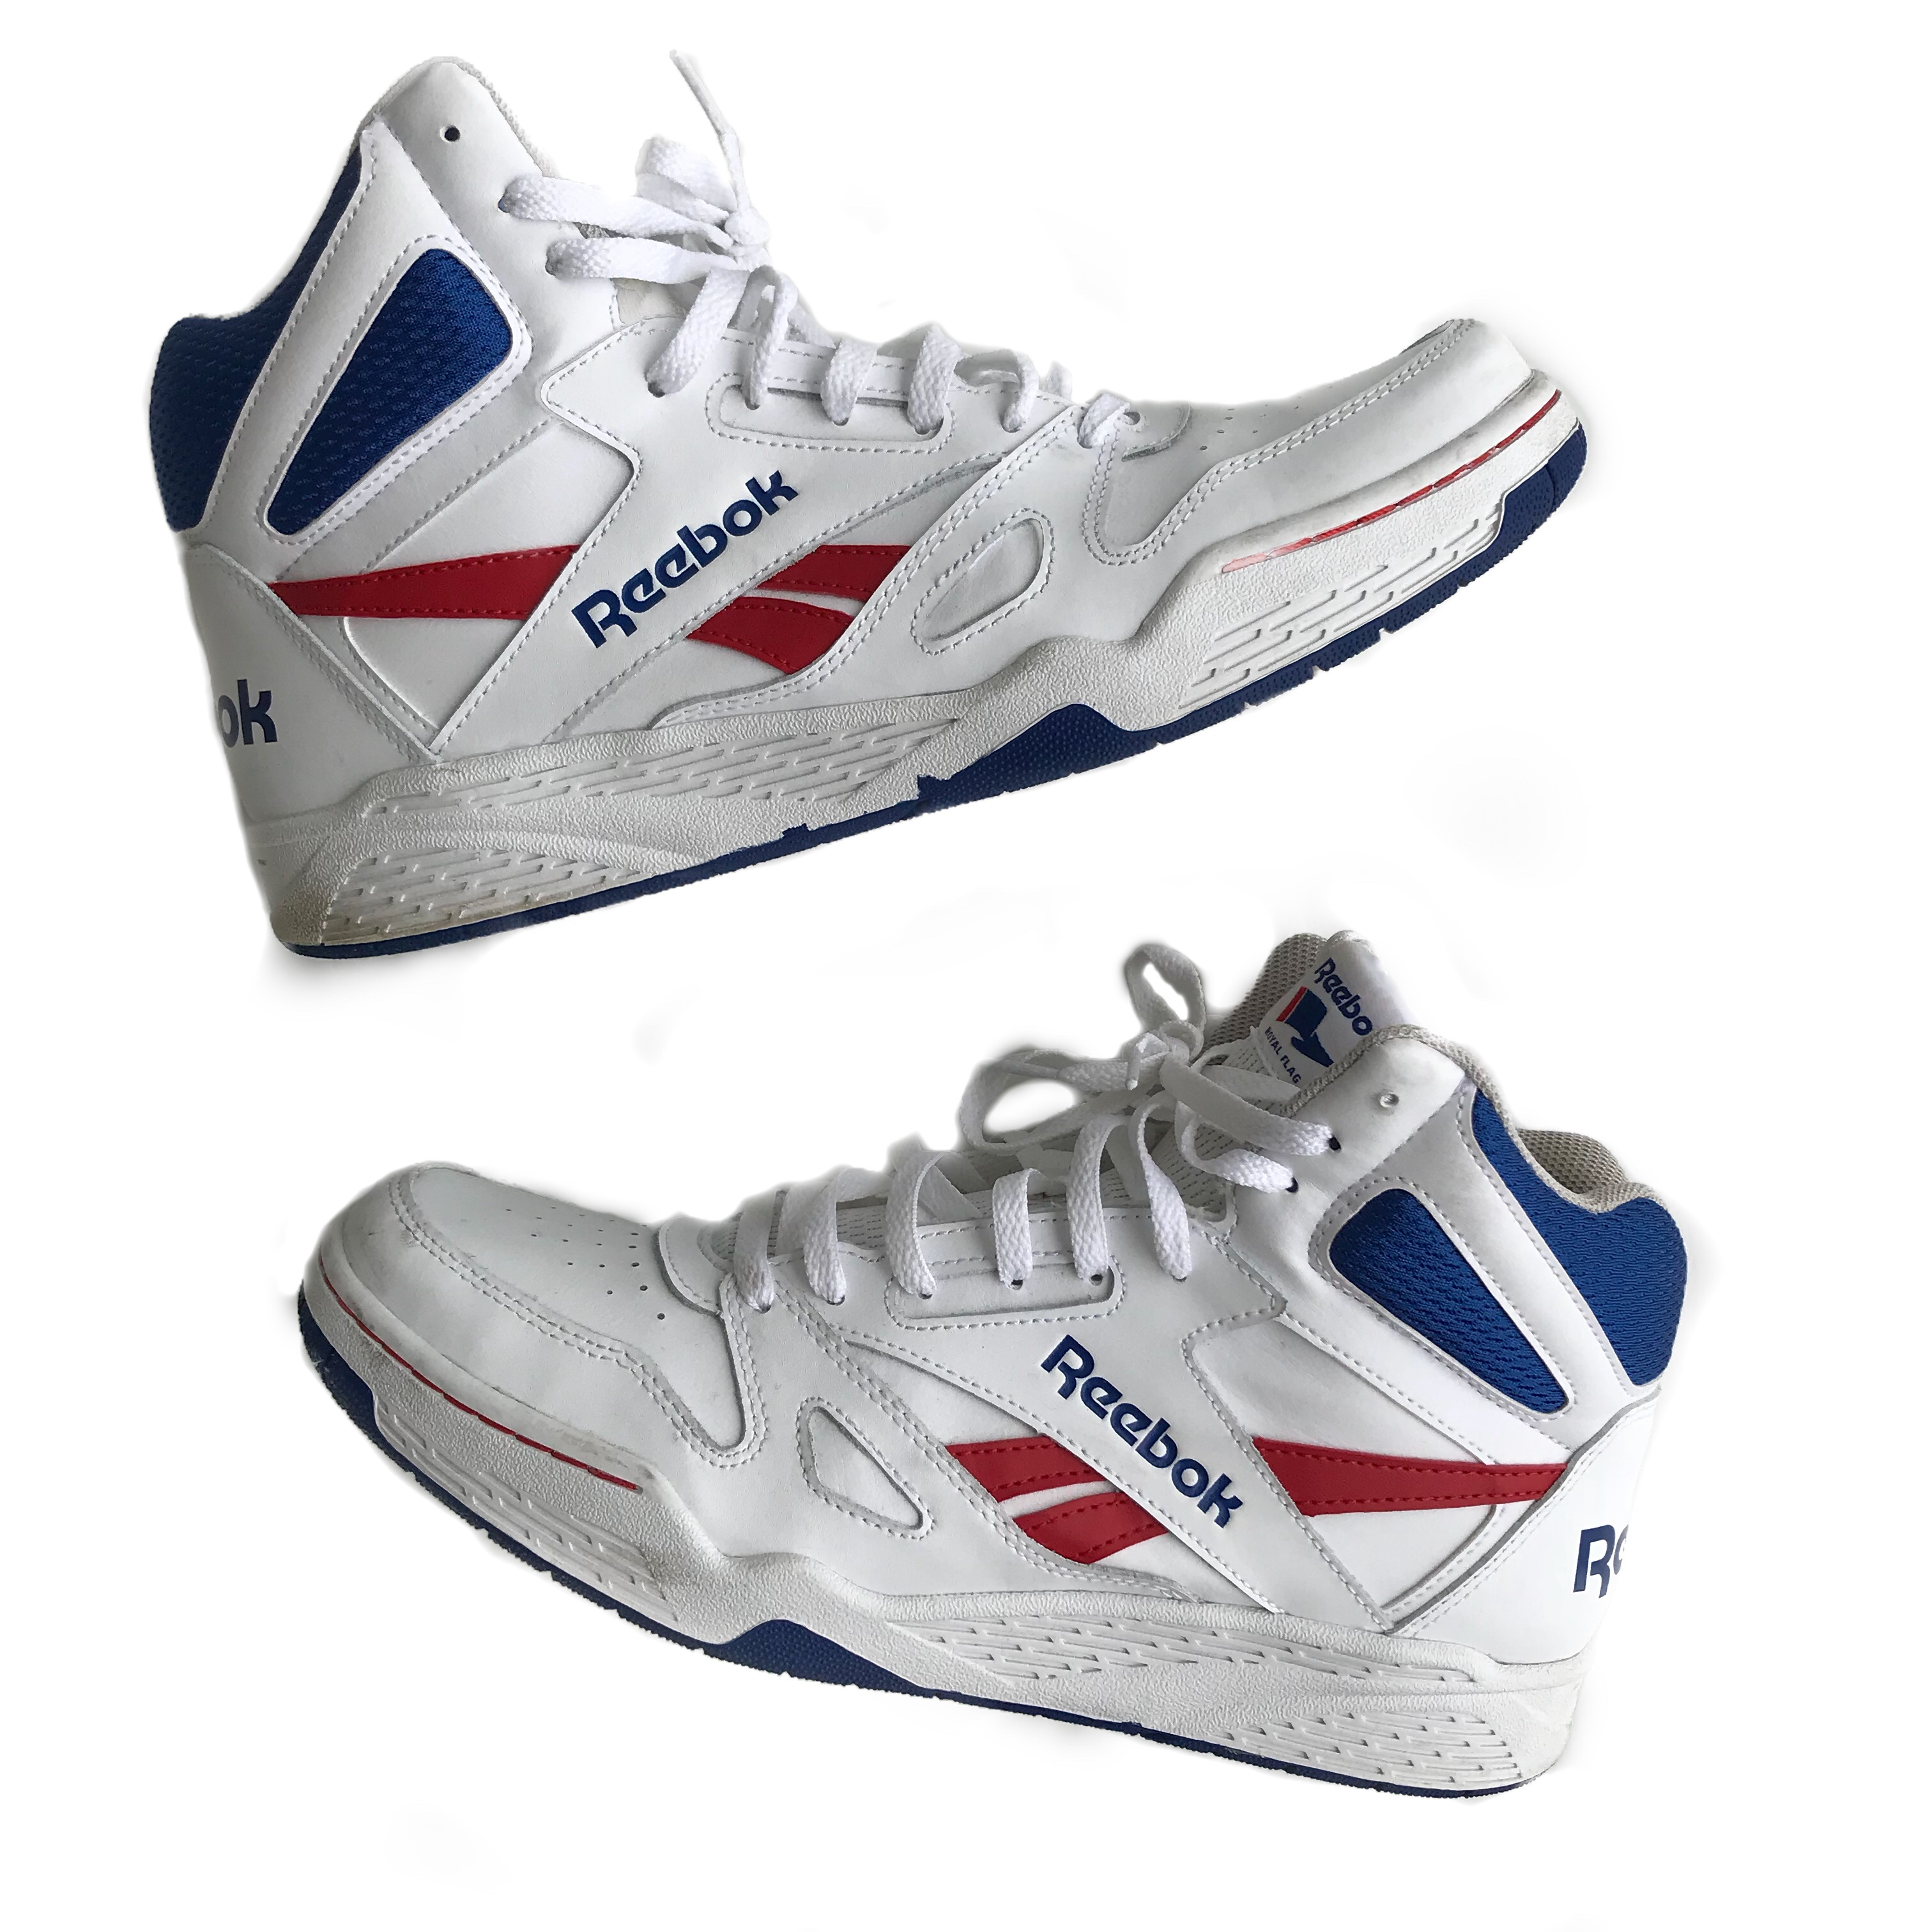 Royals Top 90s Reebok Depop Basketball High Retro Ok8Pwn0